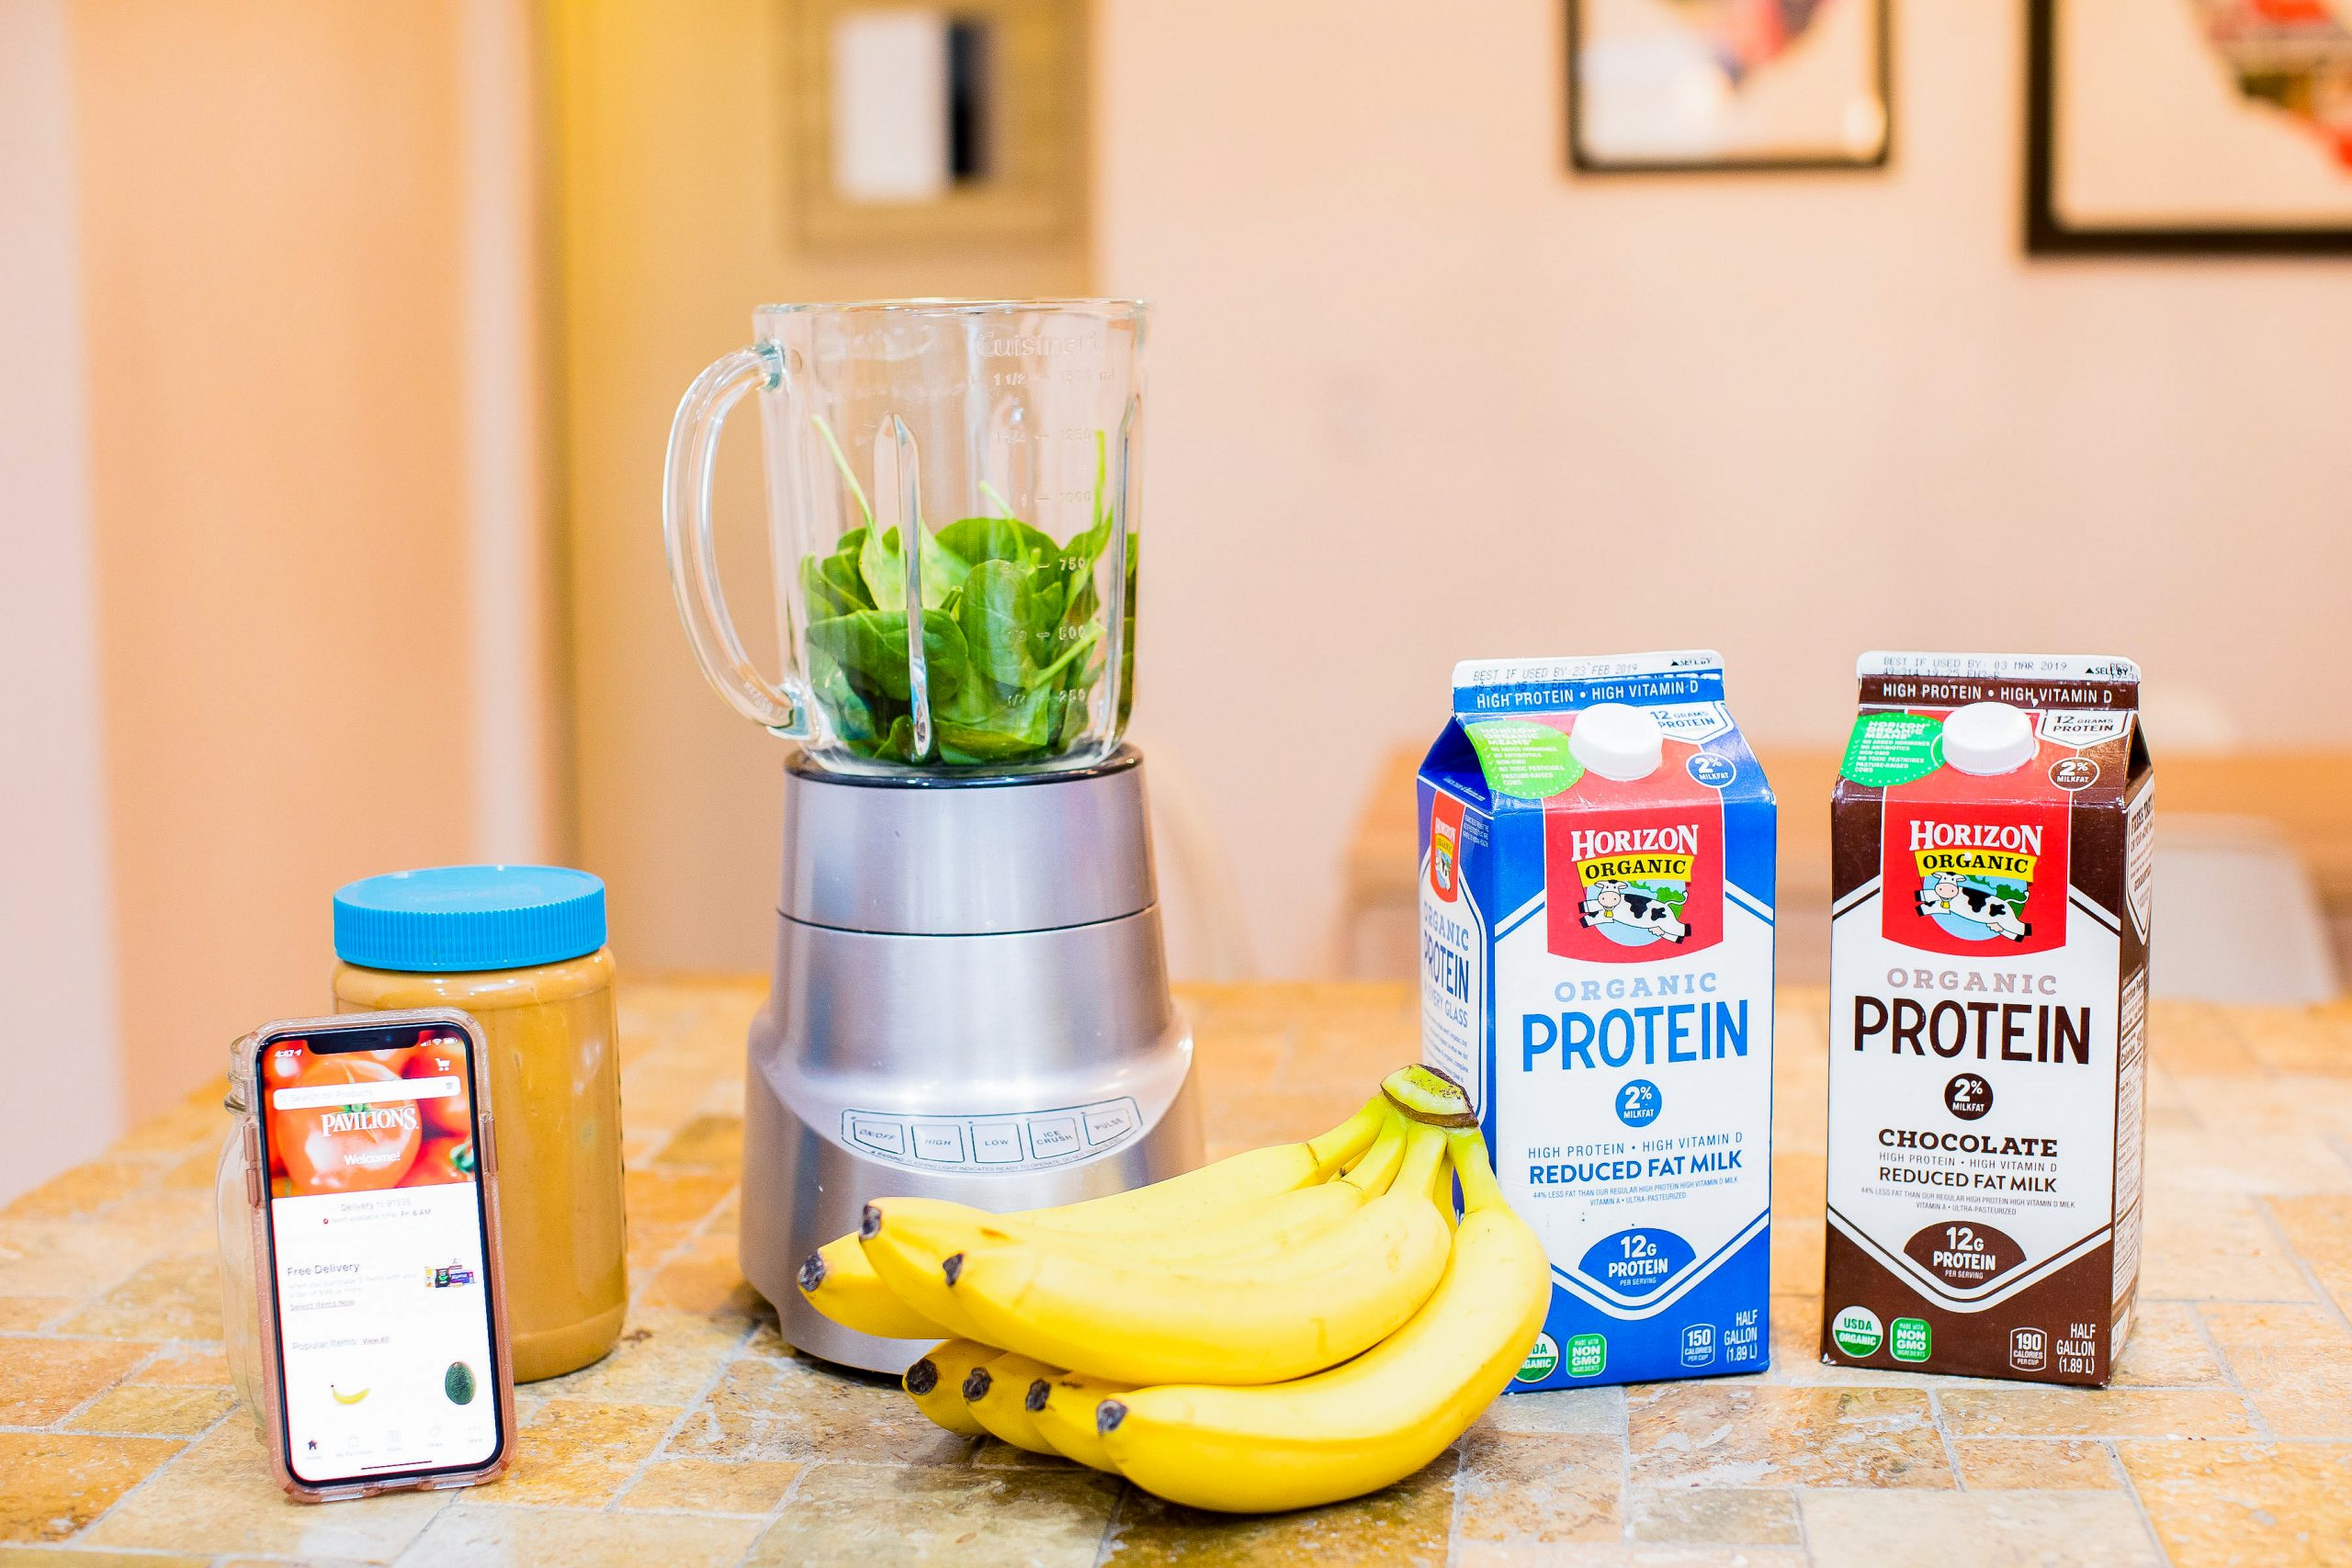 This easy breakfast smoothie recipe is DELISH!